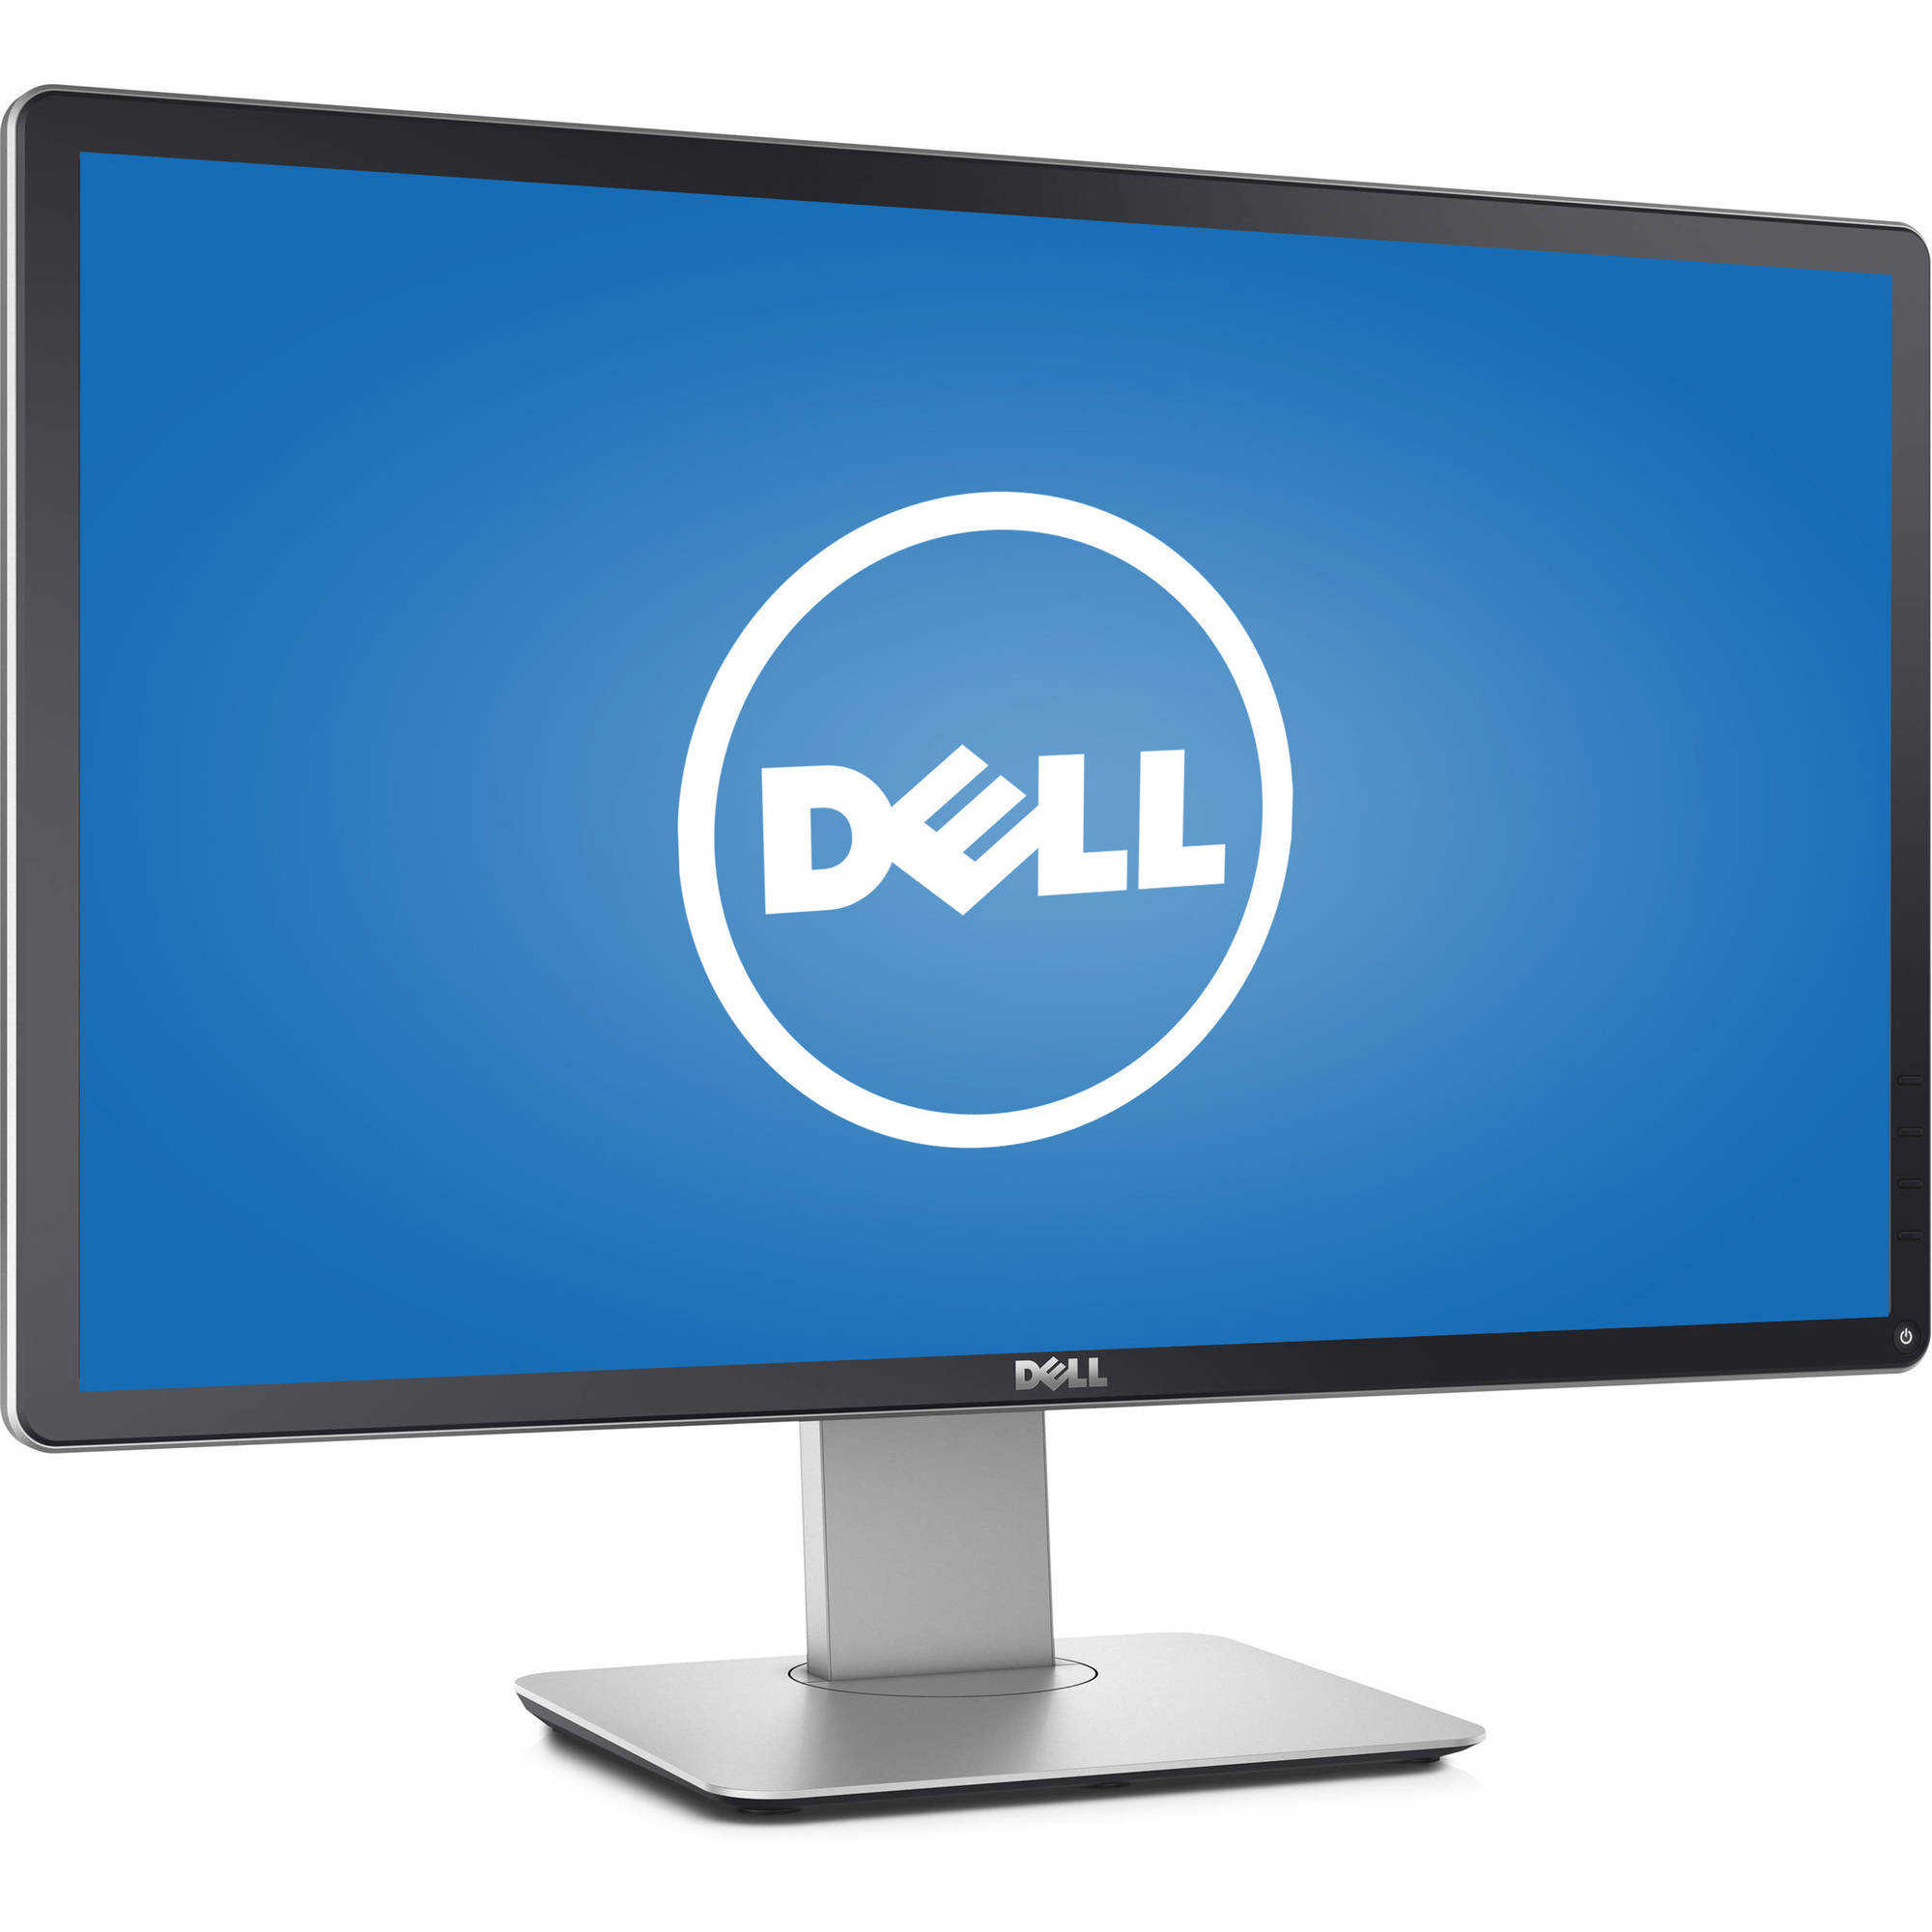 Refurbished Dell 24' Widescreen LCD Monitor (Dell.24.LCD.WS Black)